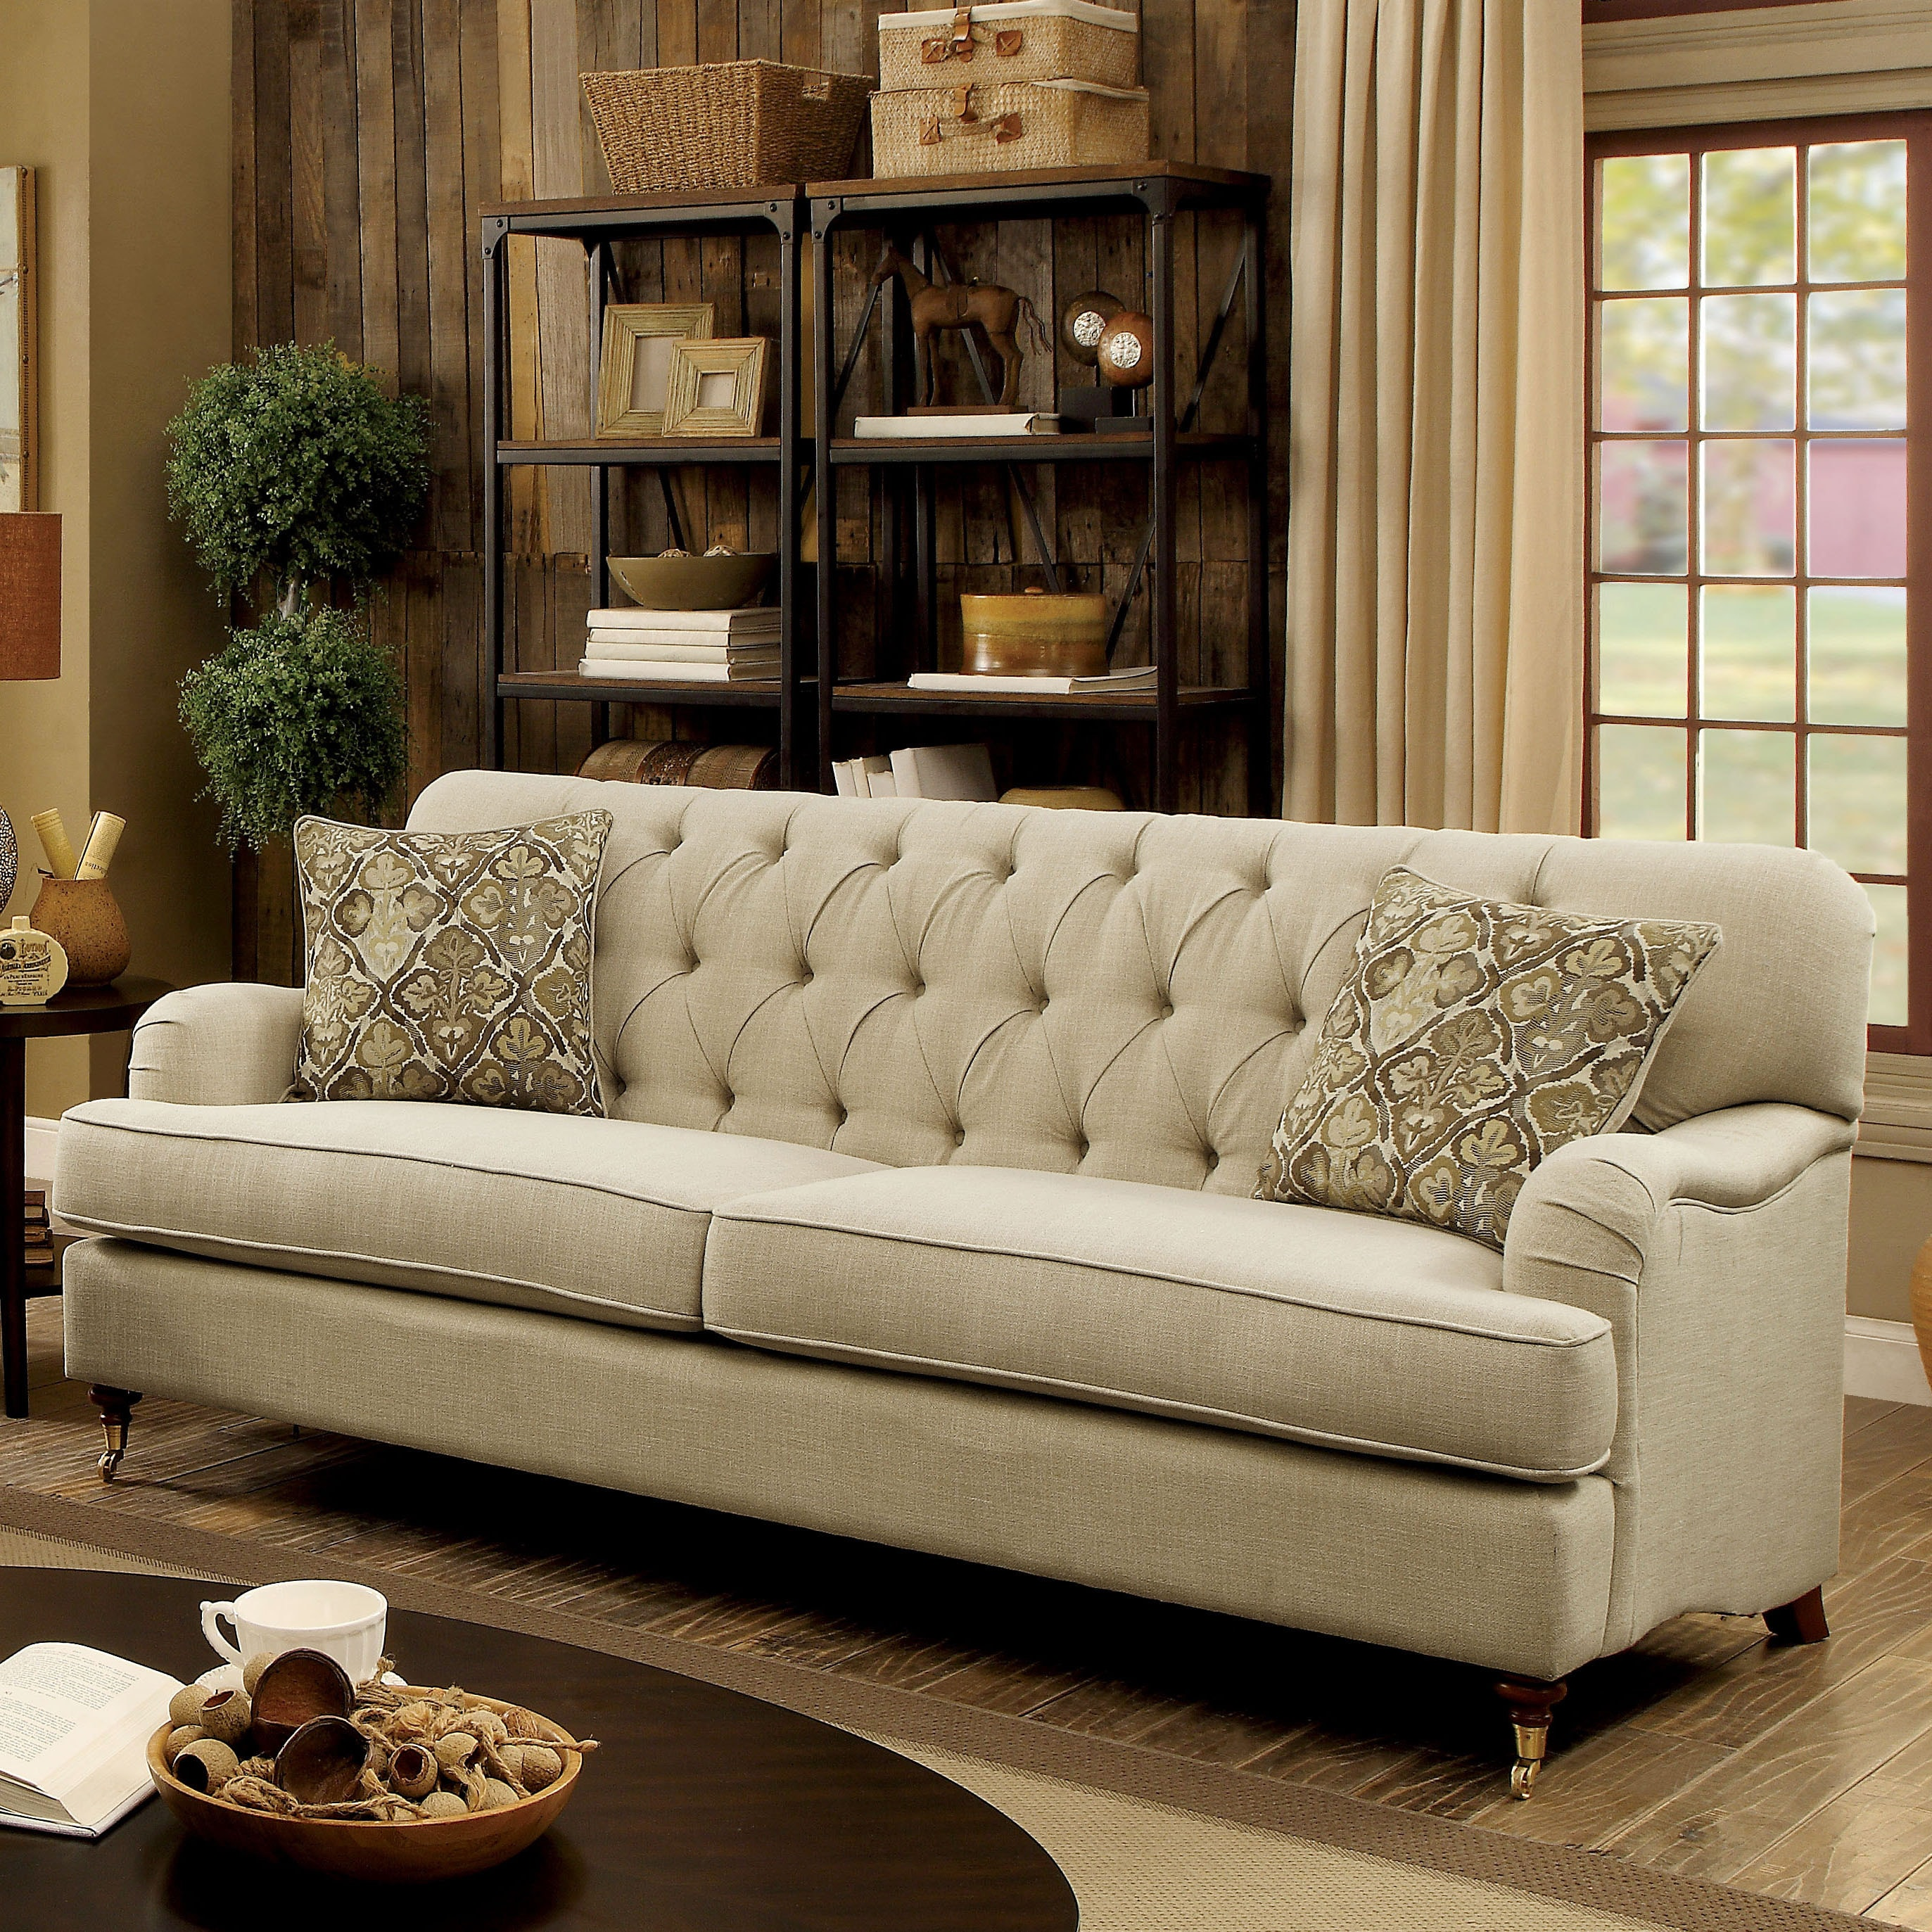 Furniture Of America Claira Traditional Deep On Tufted Beige Fabric Sofa Free Shipping Today 14566061